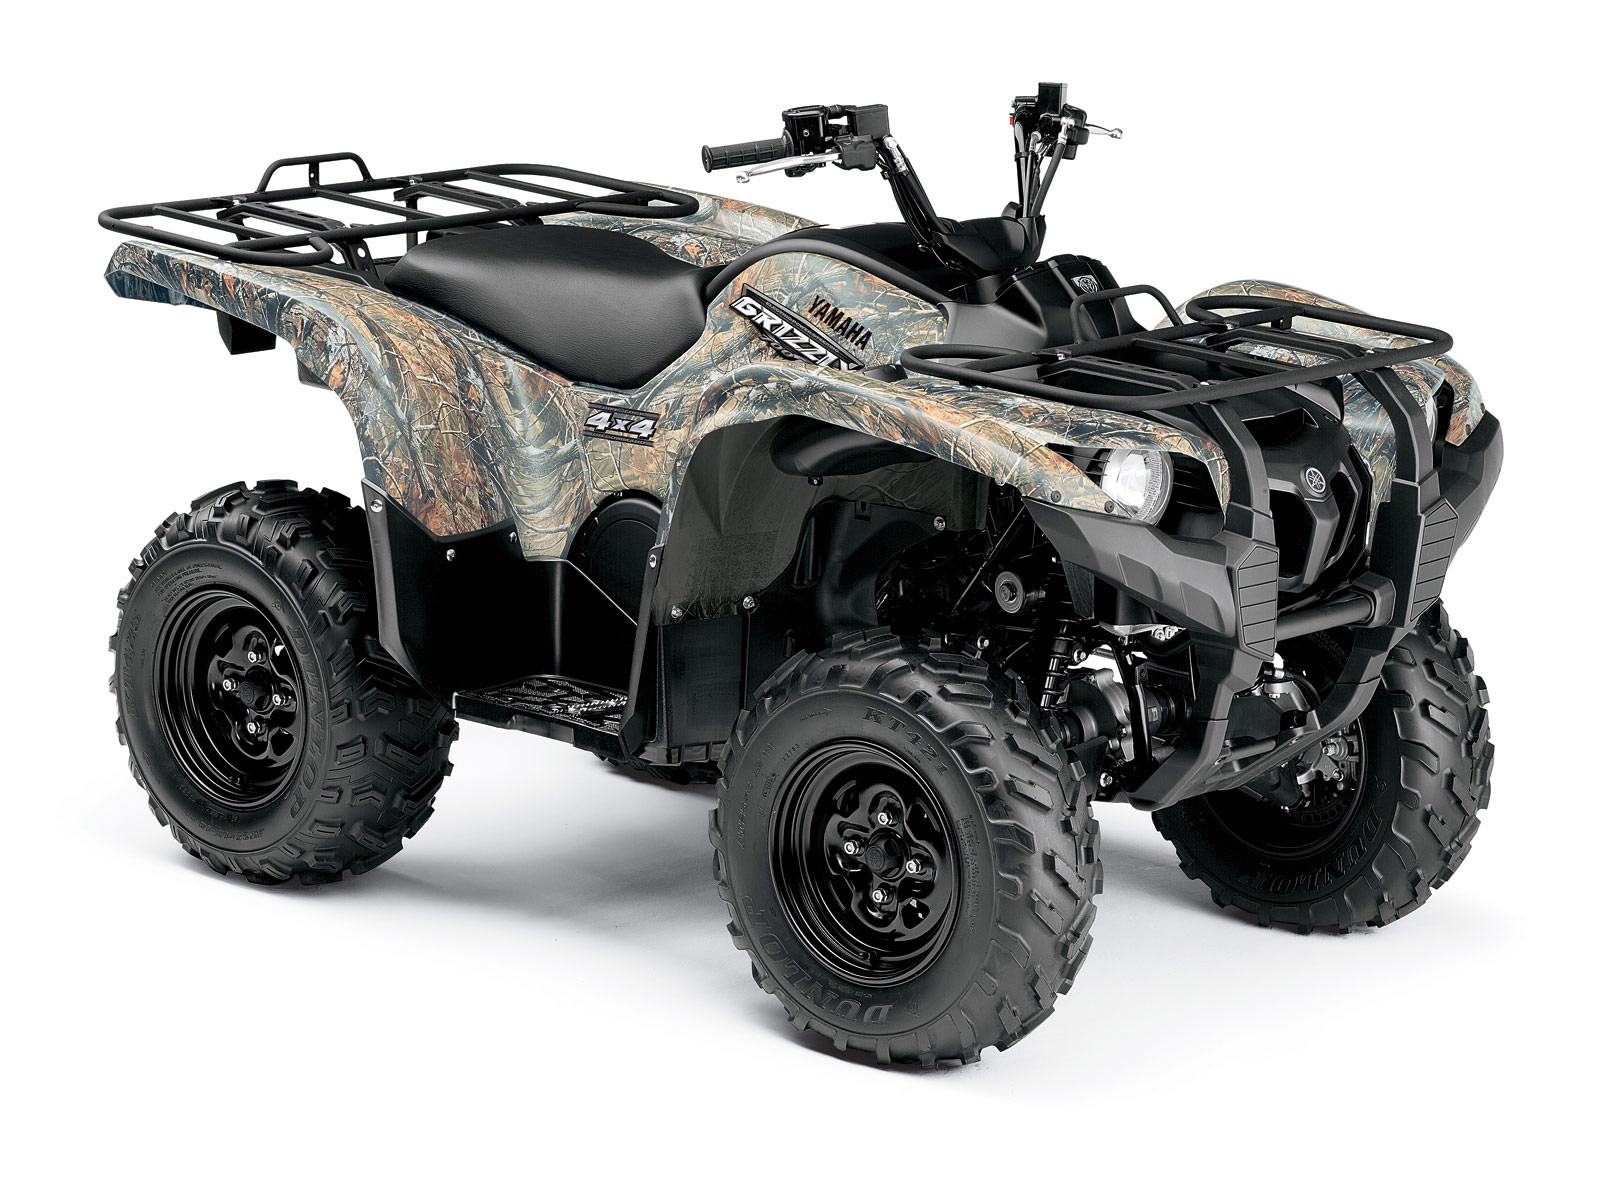 yamaha grizzly 700 fi eps ducks unlimited 2009 atv. Black Bedroom Furniture Sets. Home Design Ideas